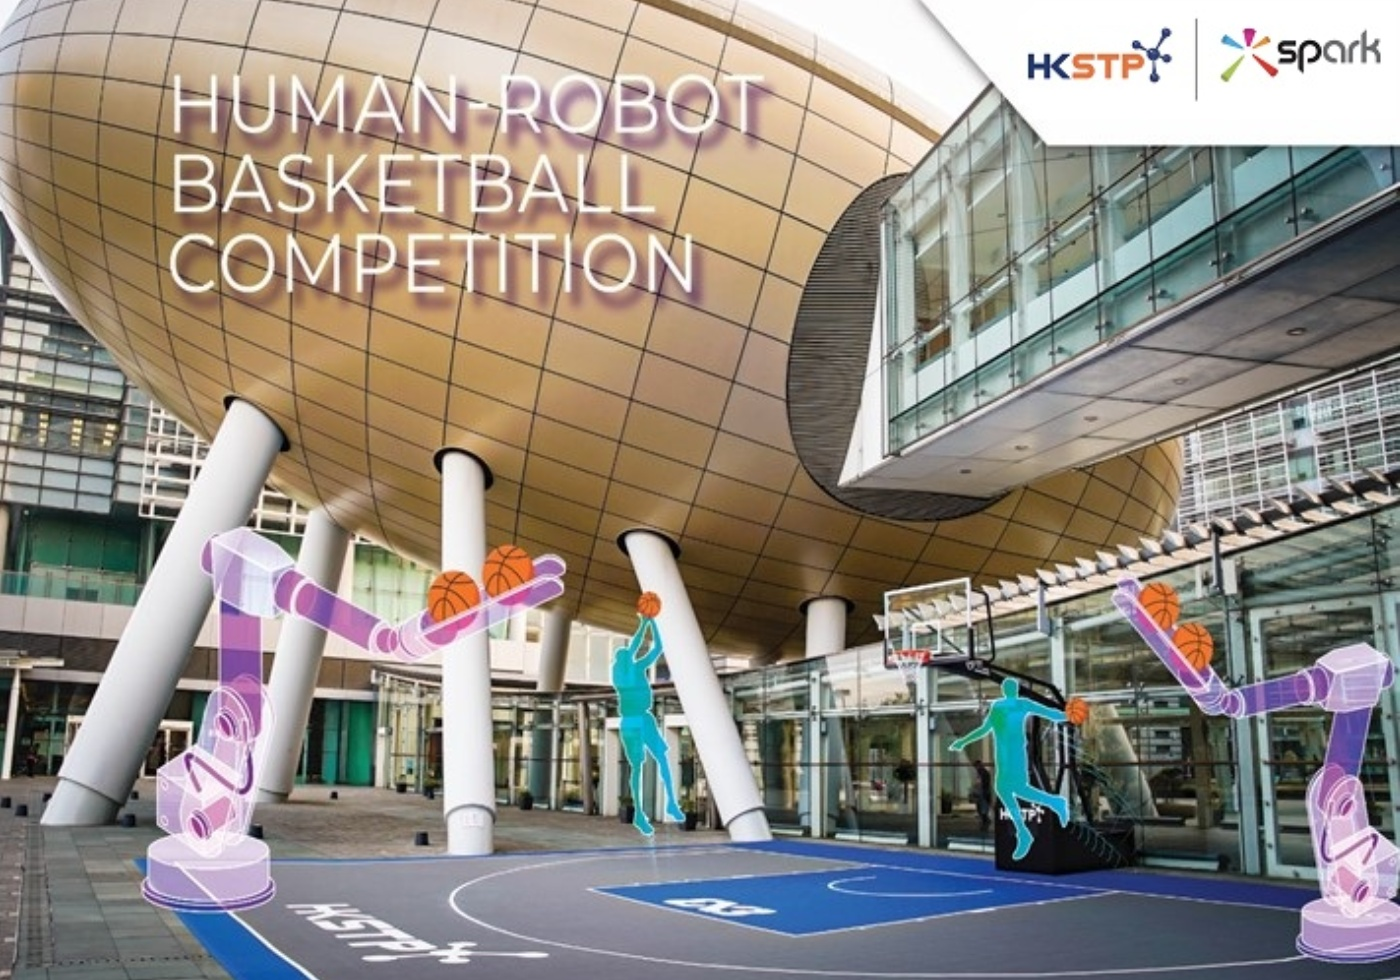 HKSTP Human-Robot Basketball Competition